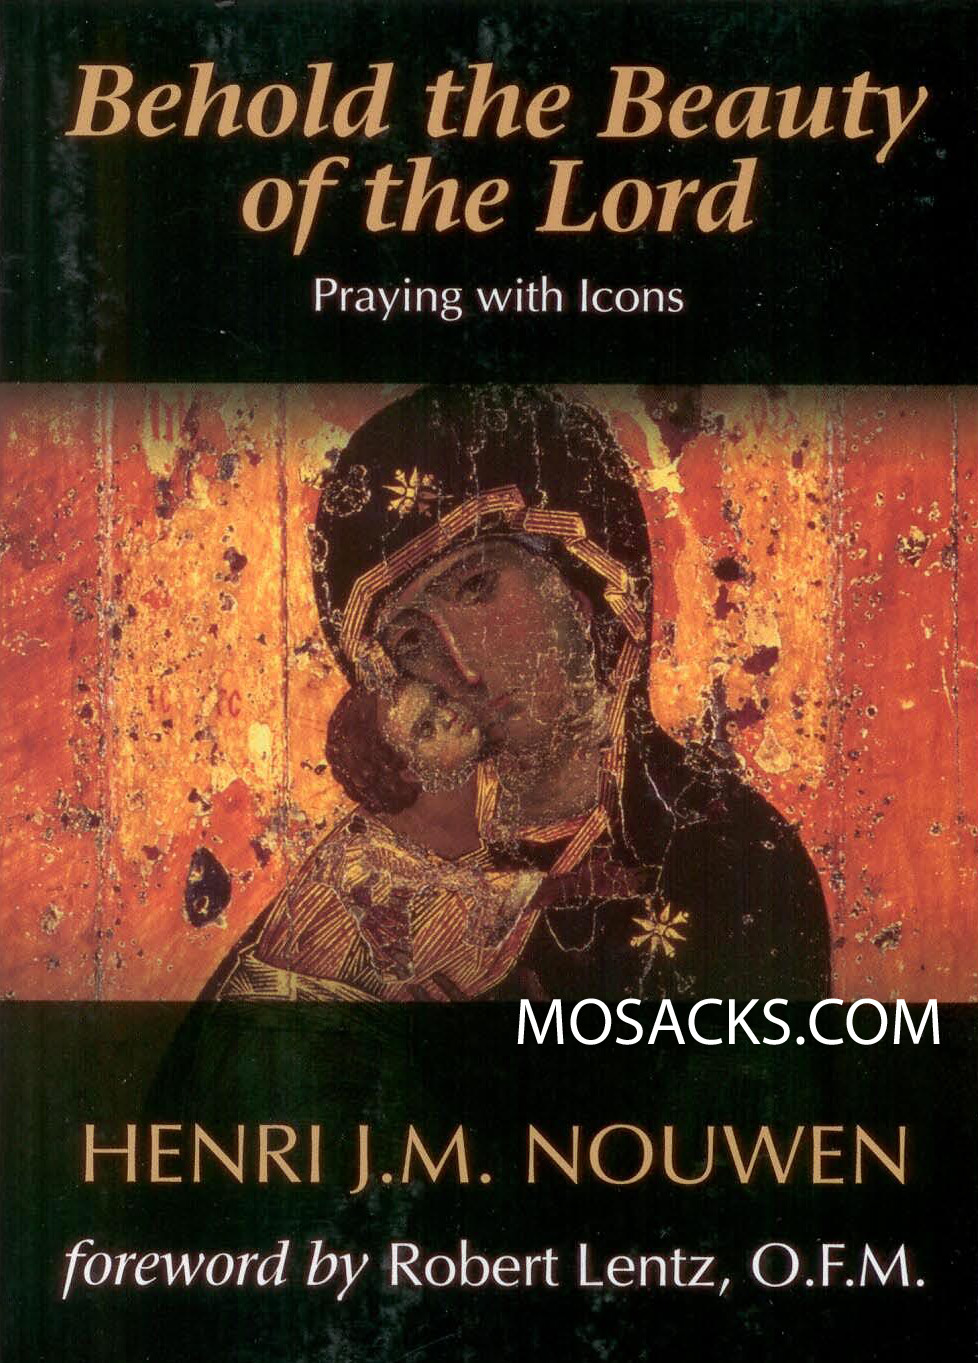 Behold the Beauty of the Lord by Henri J. M. Nouwen